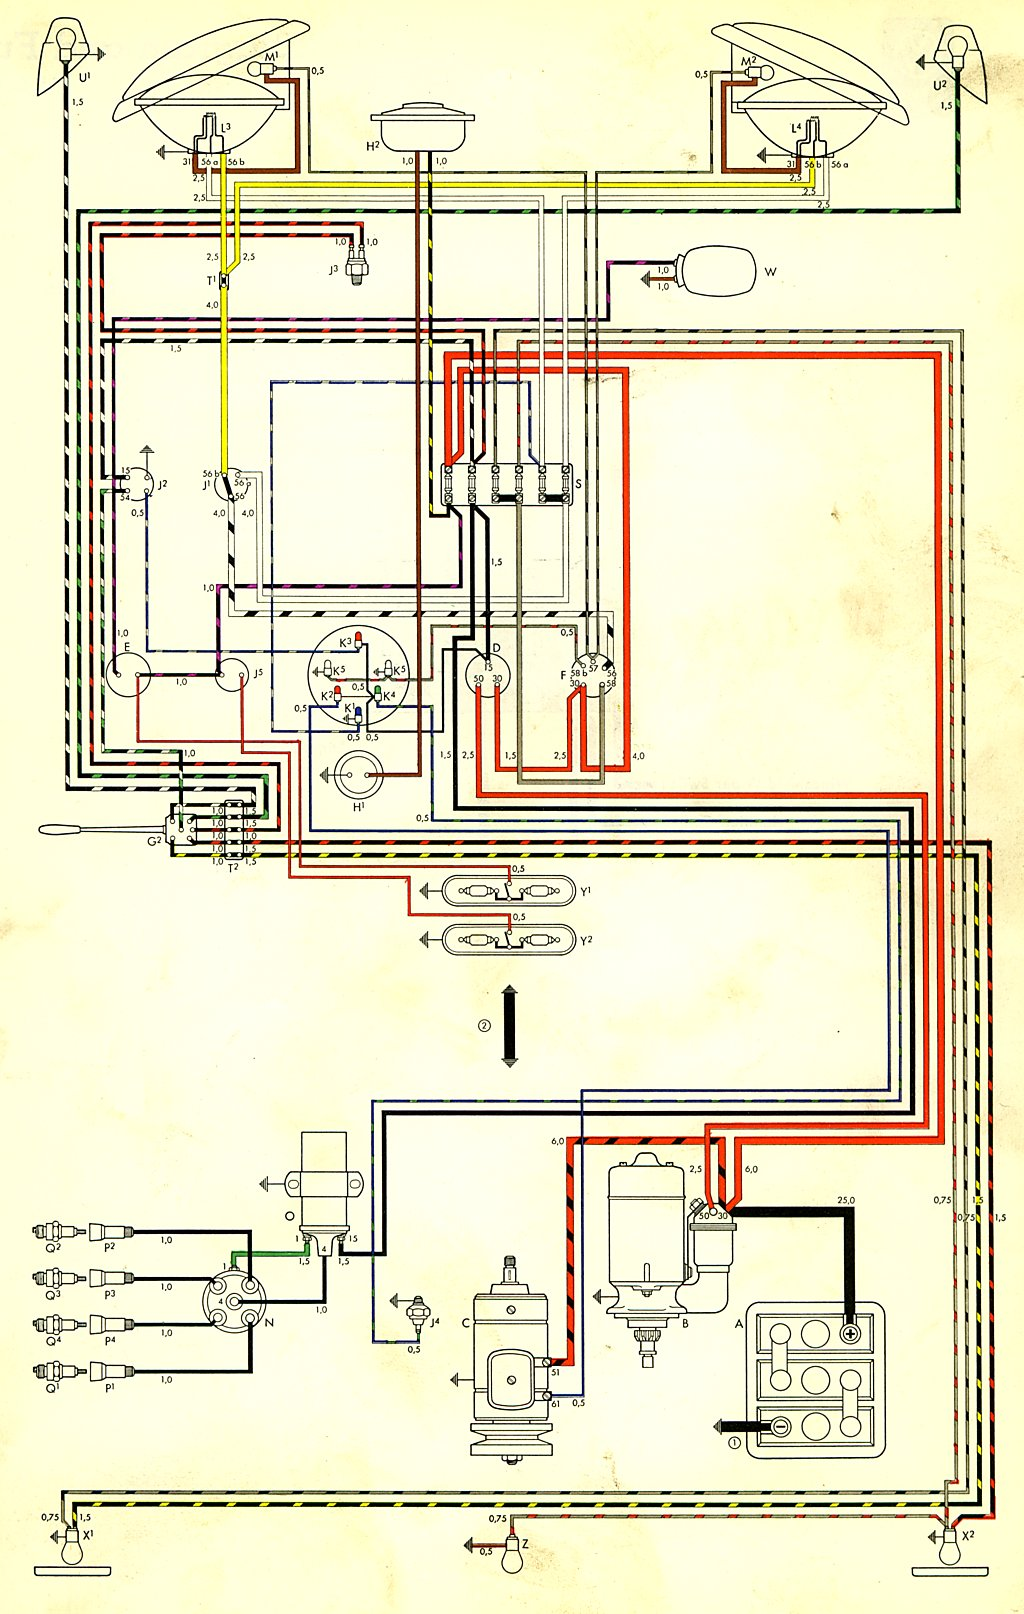 bus_59_USA 1959 bus wiring diagram (usa) thegoldenbug com VW Bus Ignition Coil at cos-gaming.co